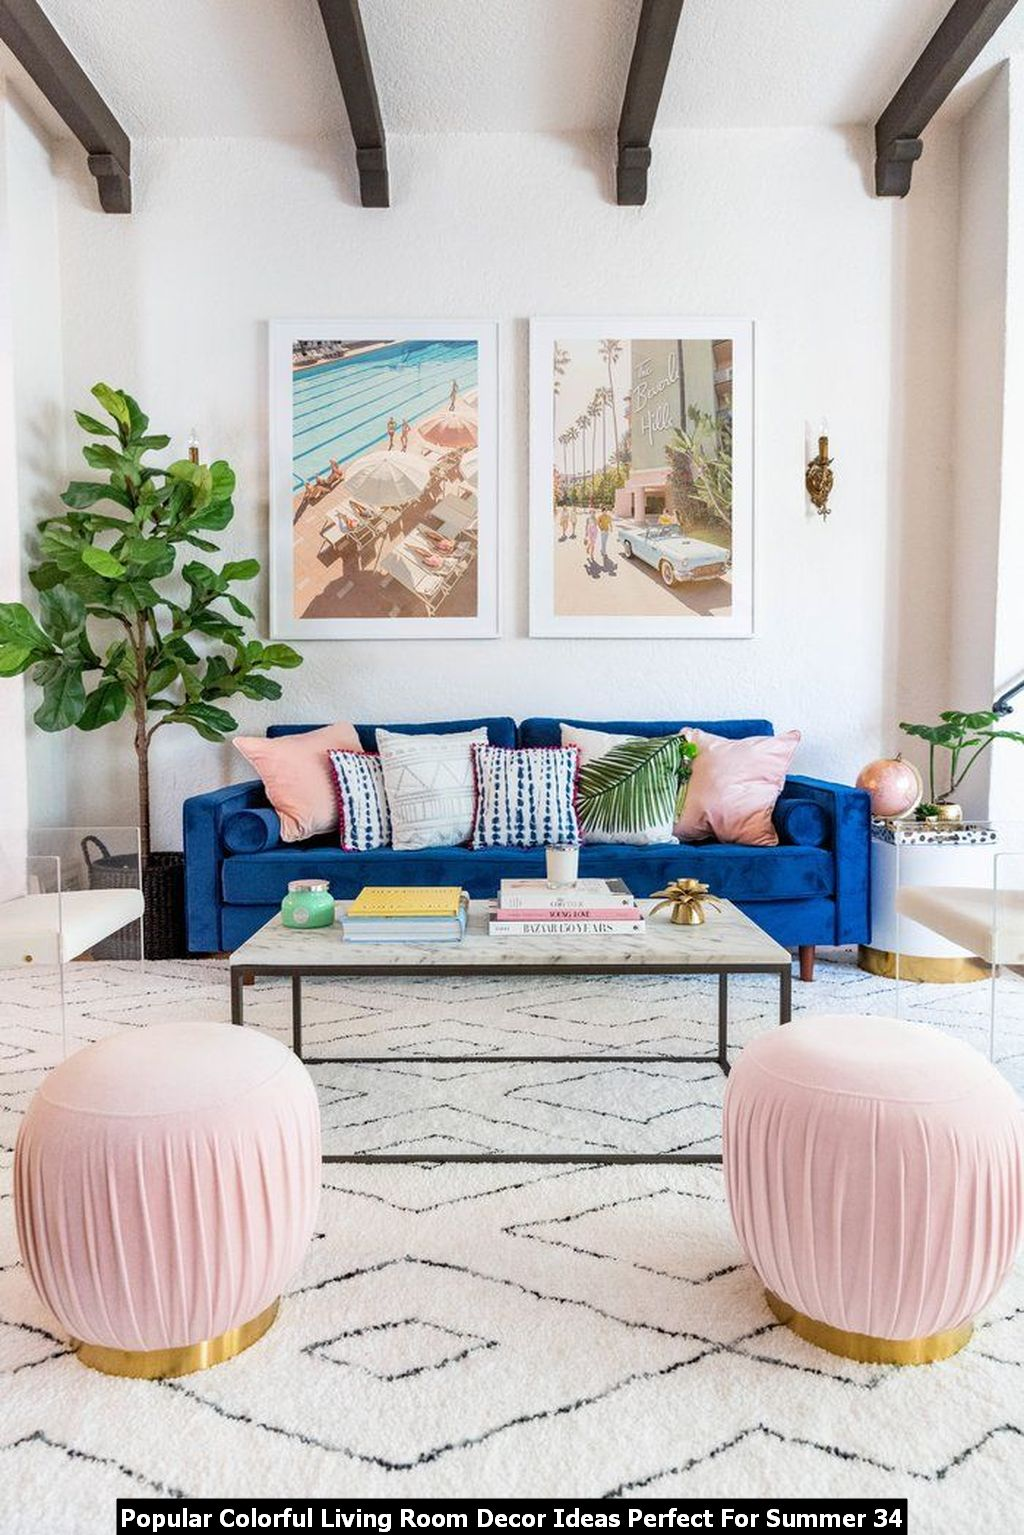 Popular Colorful Living Room Decor Ideas Perfect For Summer 34